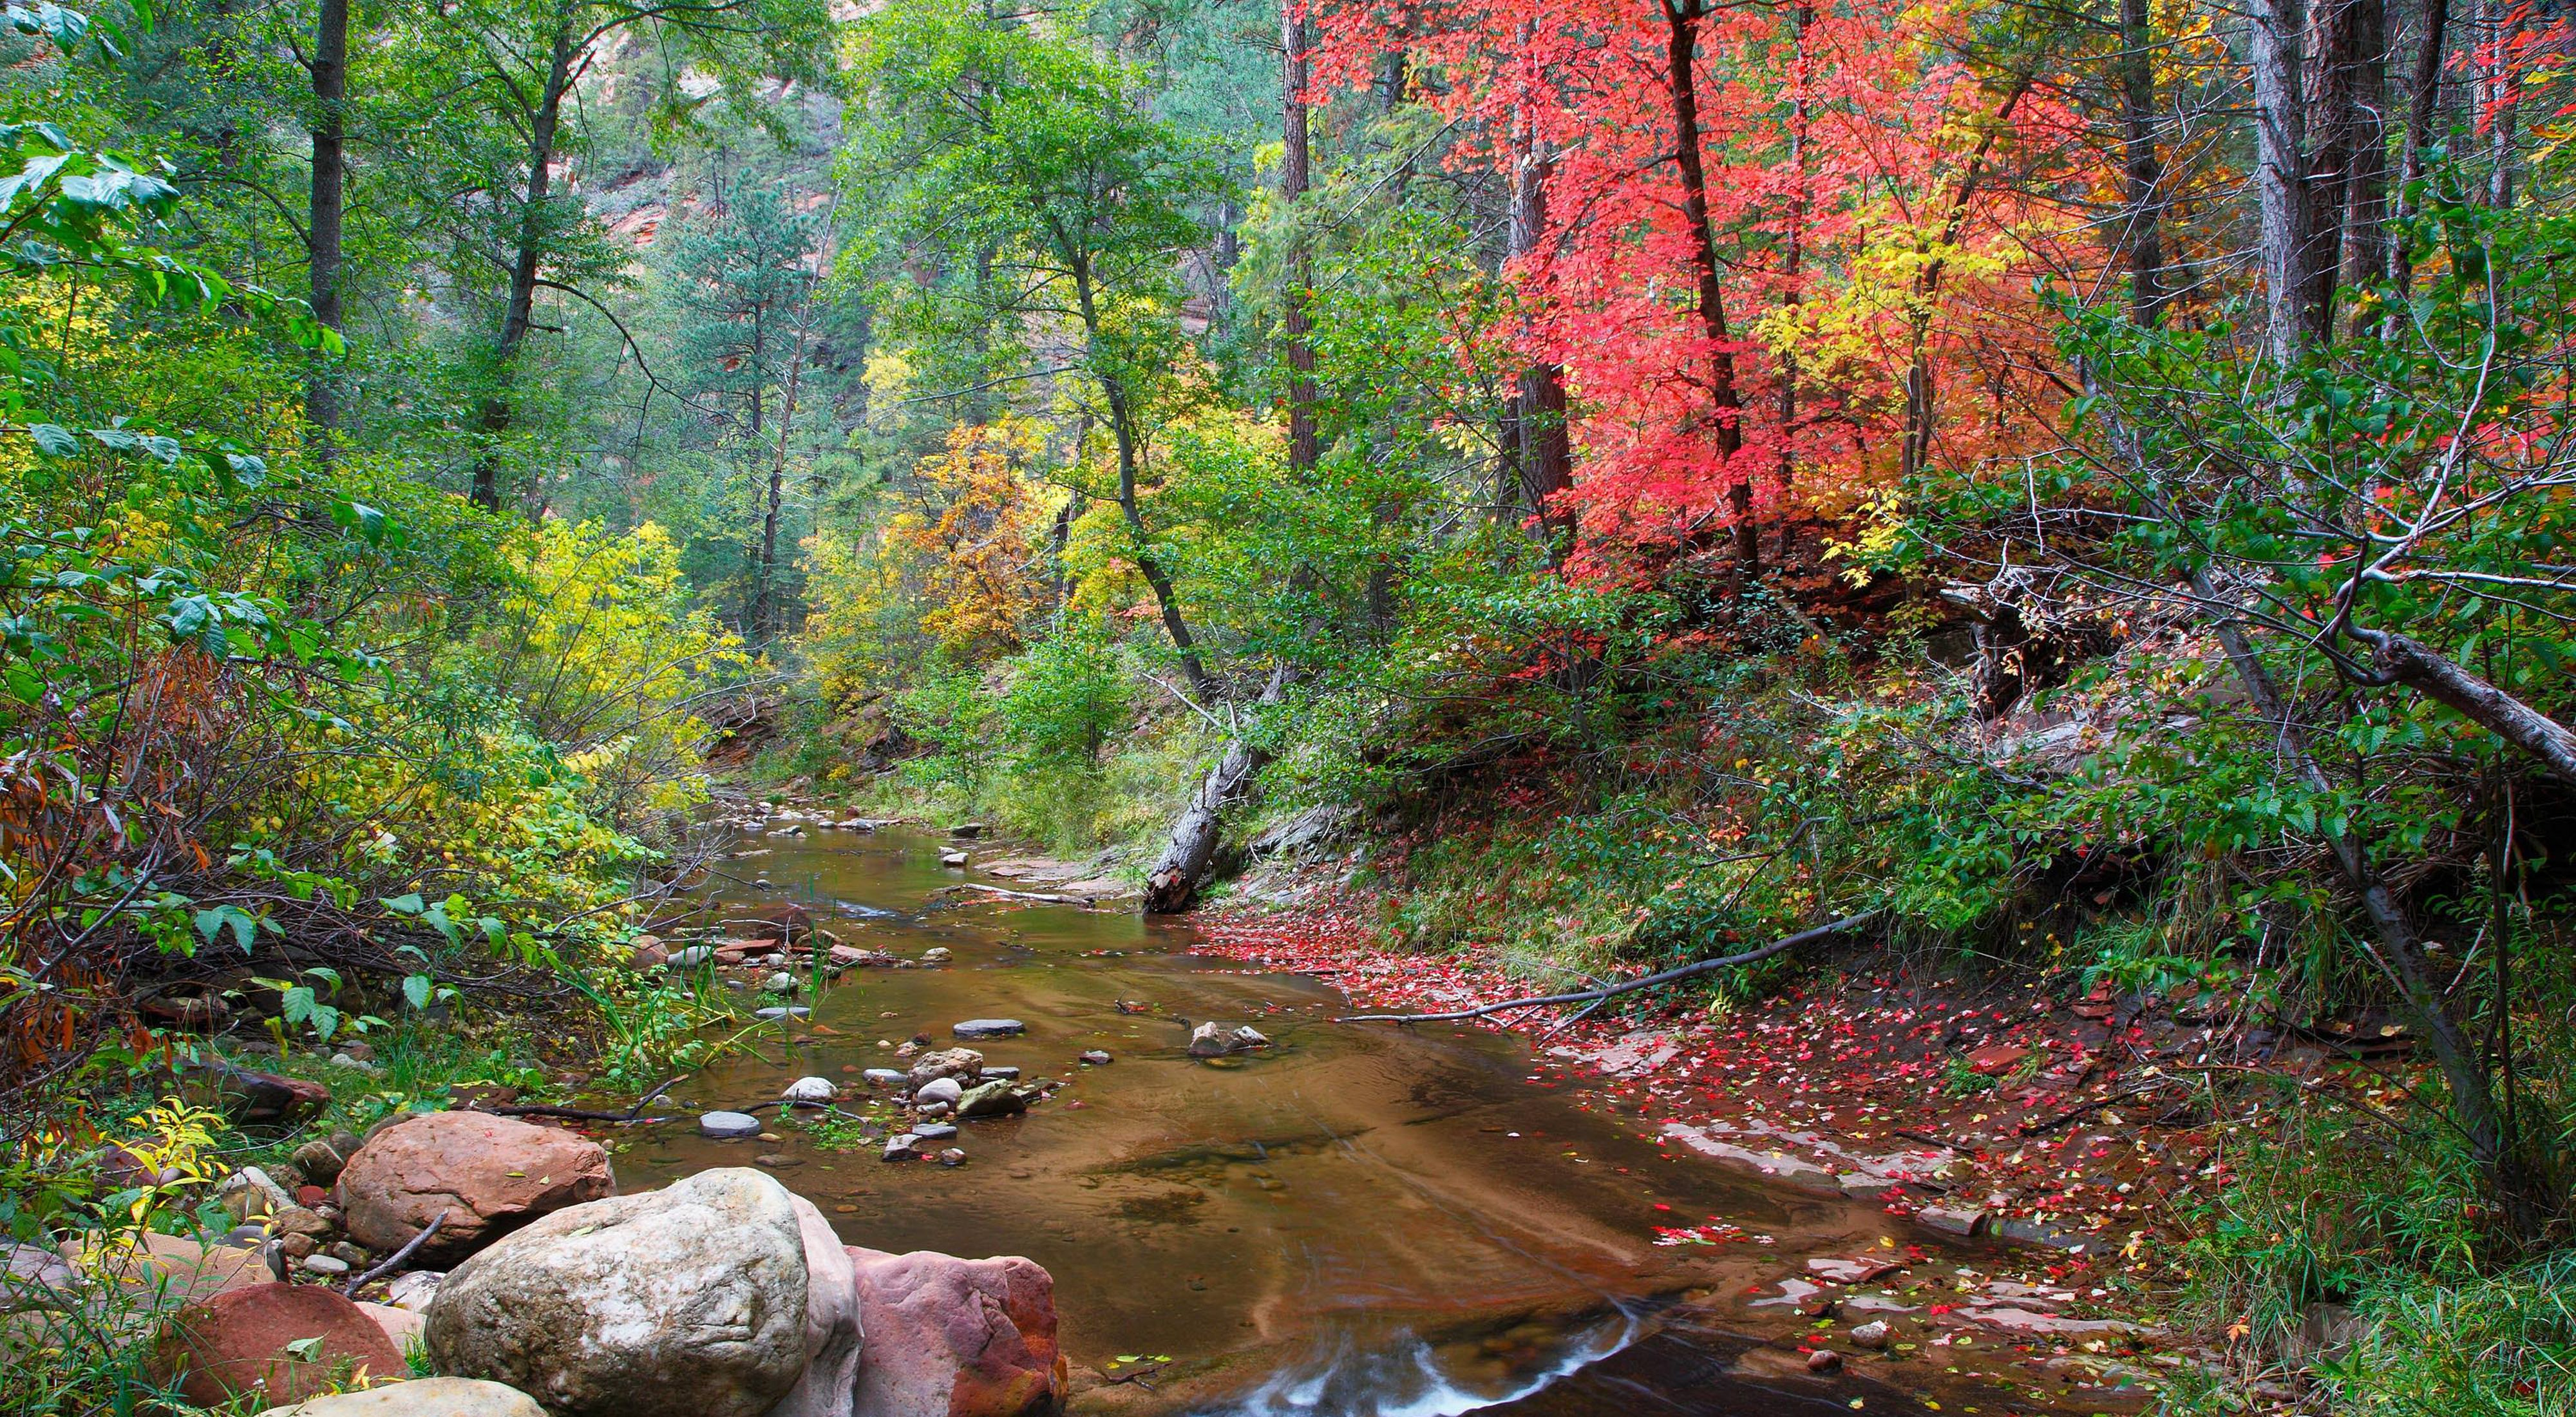 West Fork of Oak Creek Canyon in Coconino National Forest, Arizona.